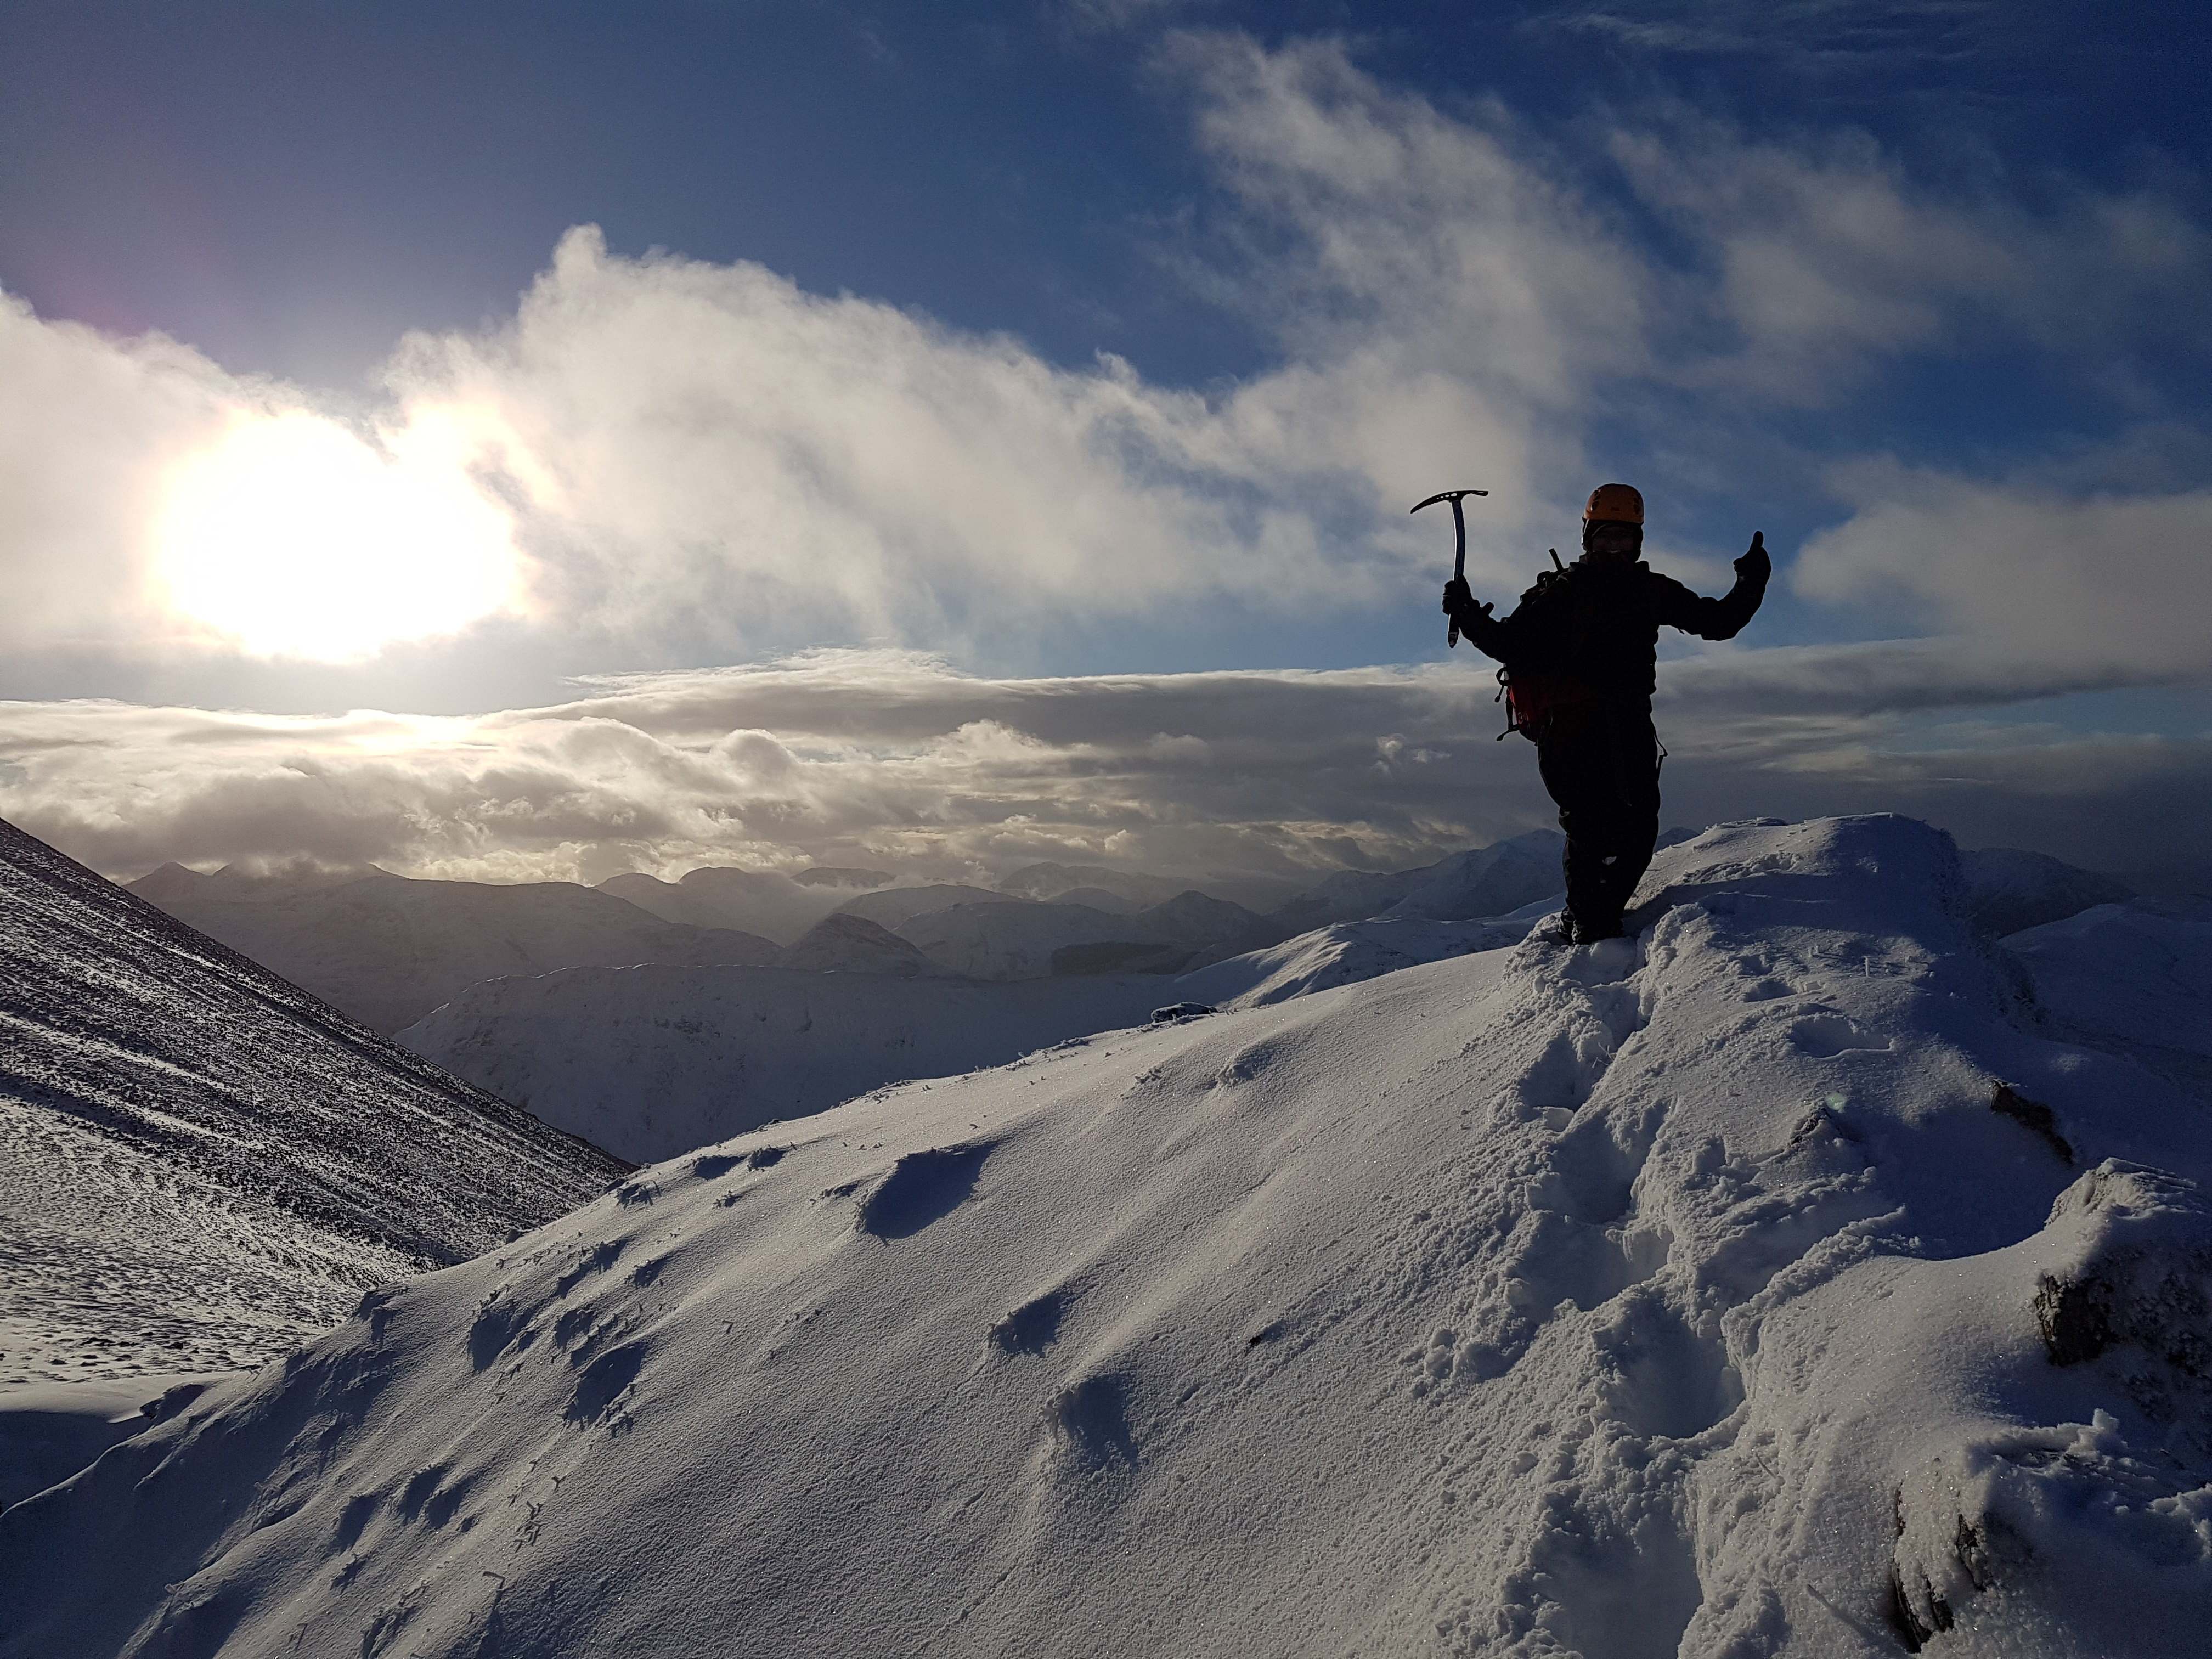 Enjoying the views on a Winter Skills Course.